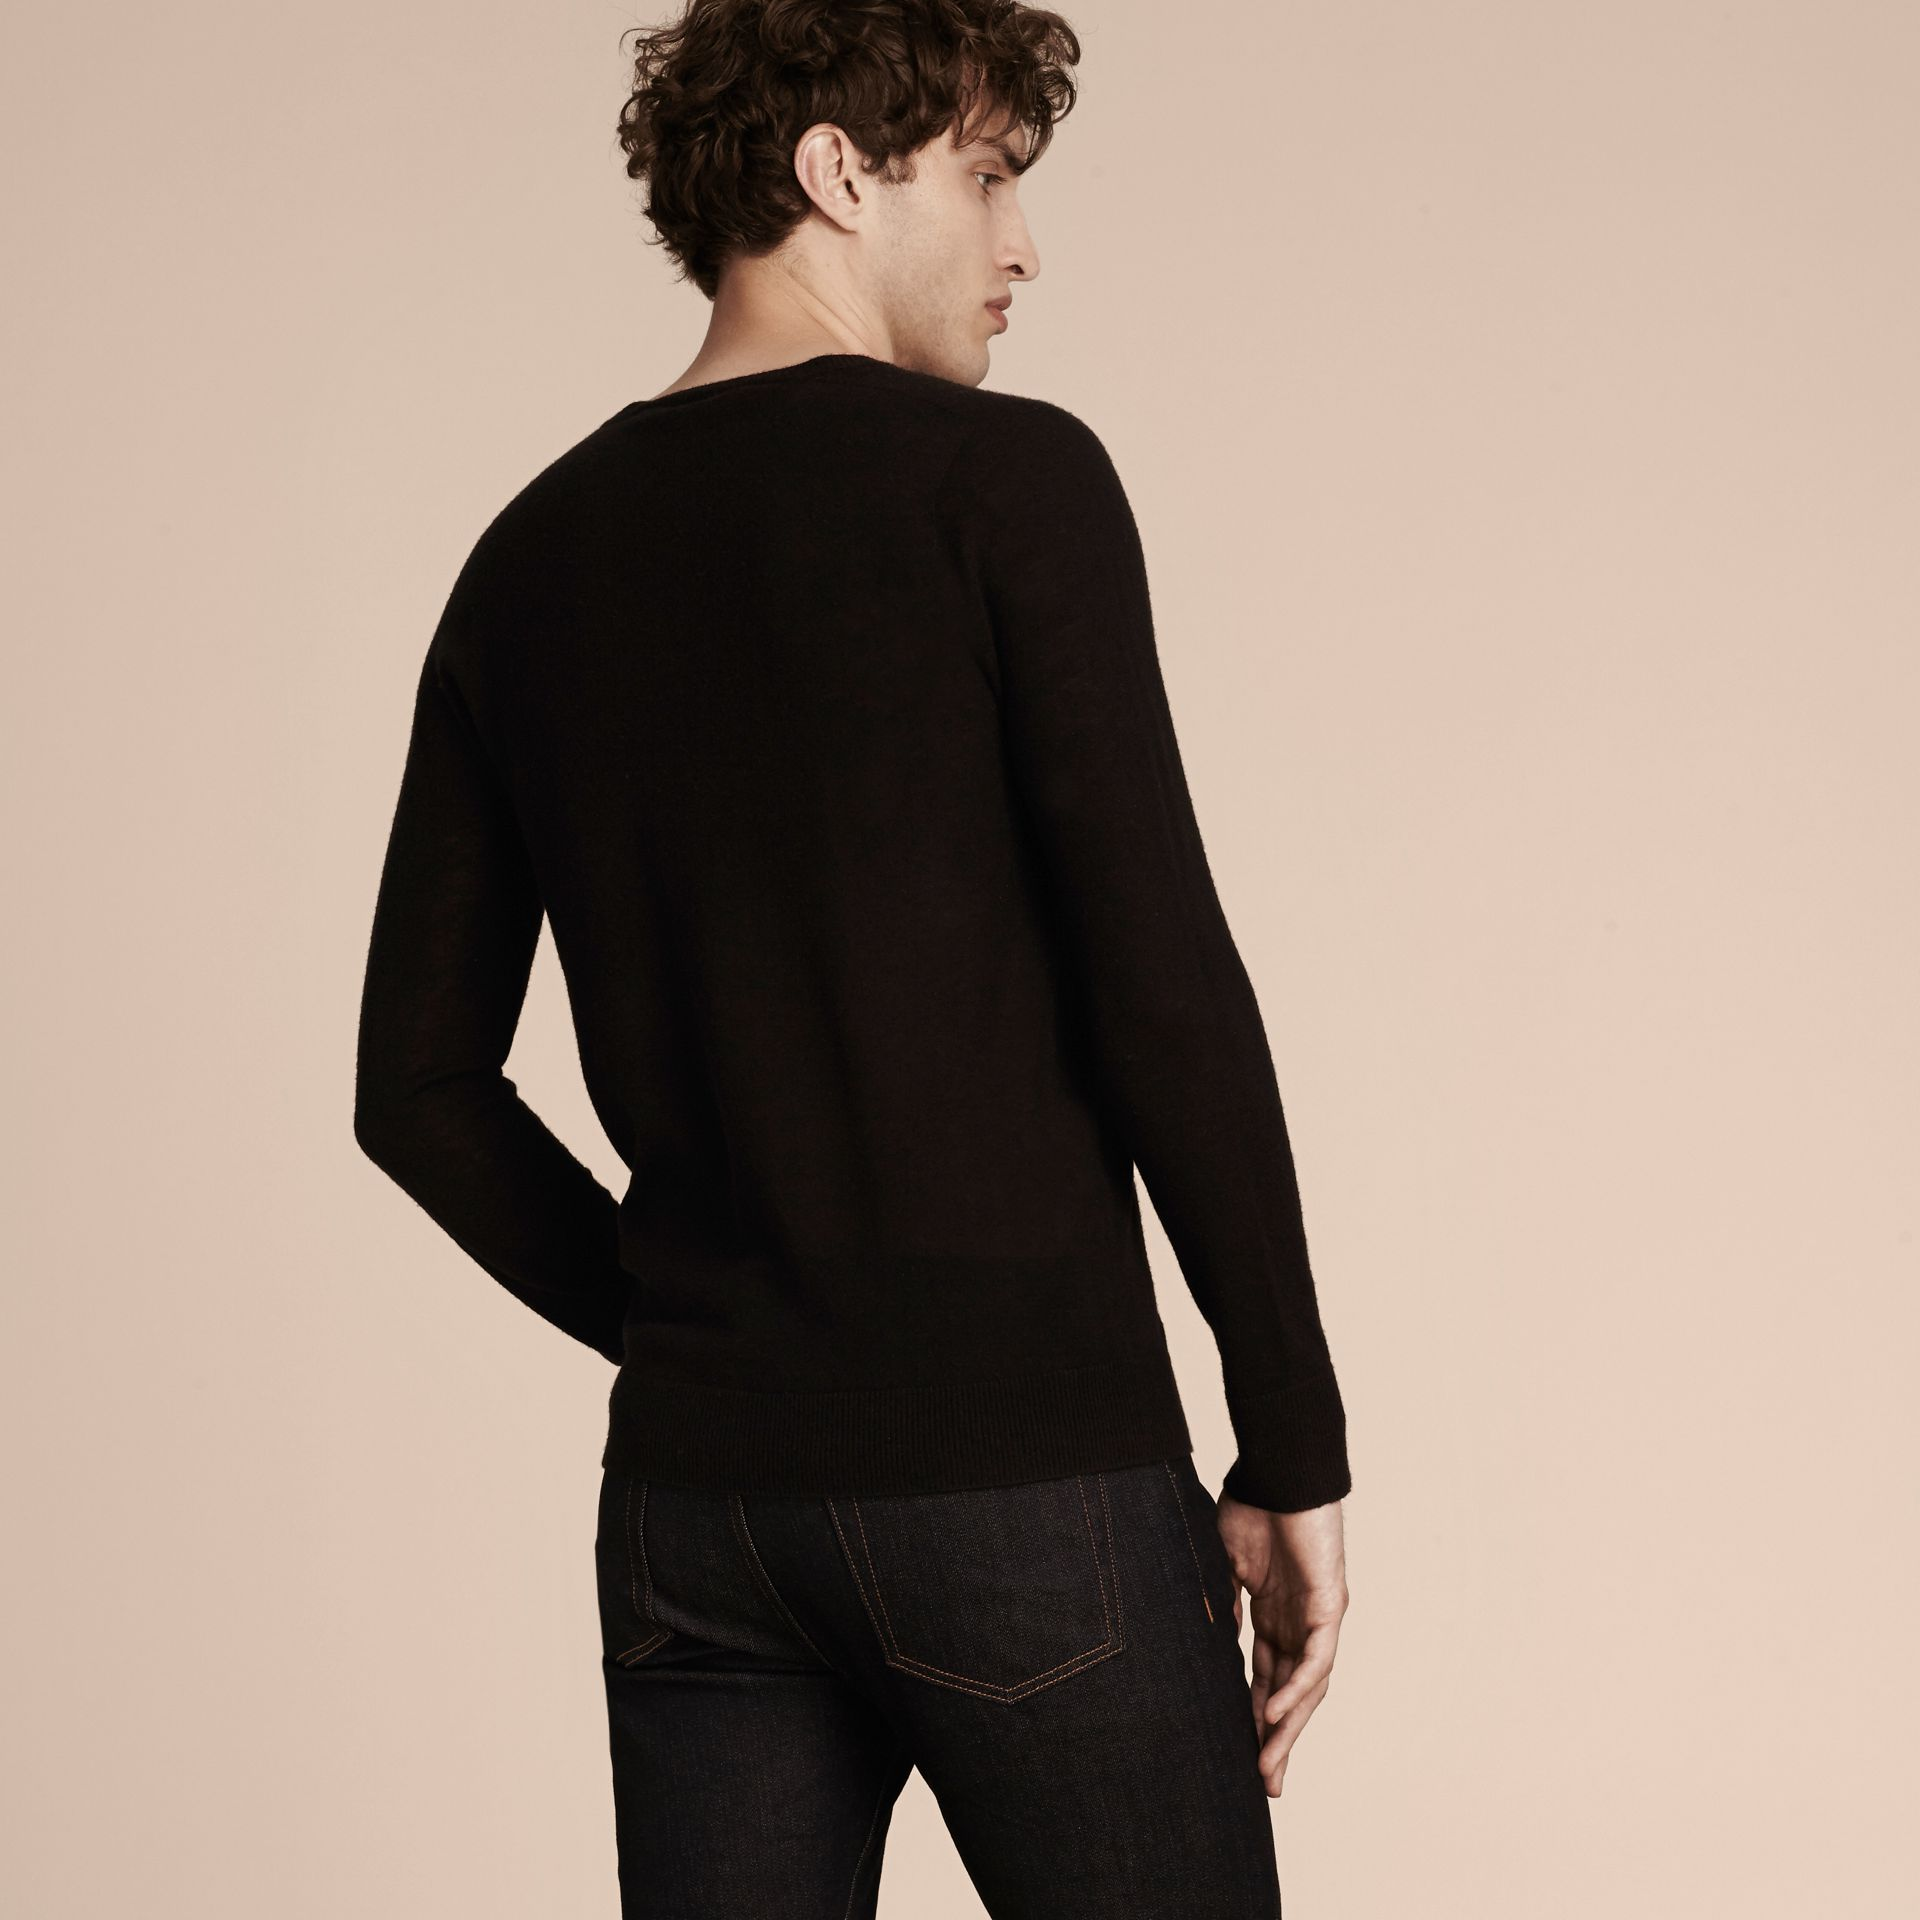 Black Cashmere V-neck Sweater Black - gallery image 3